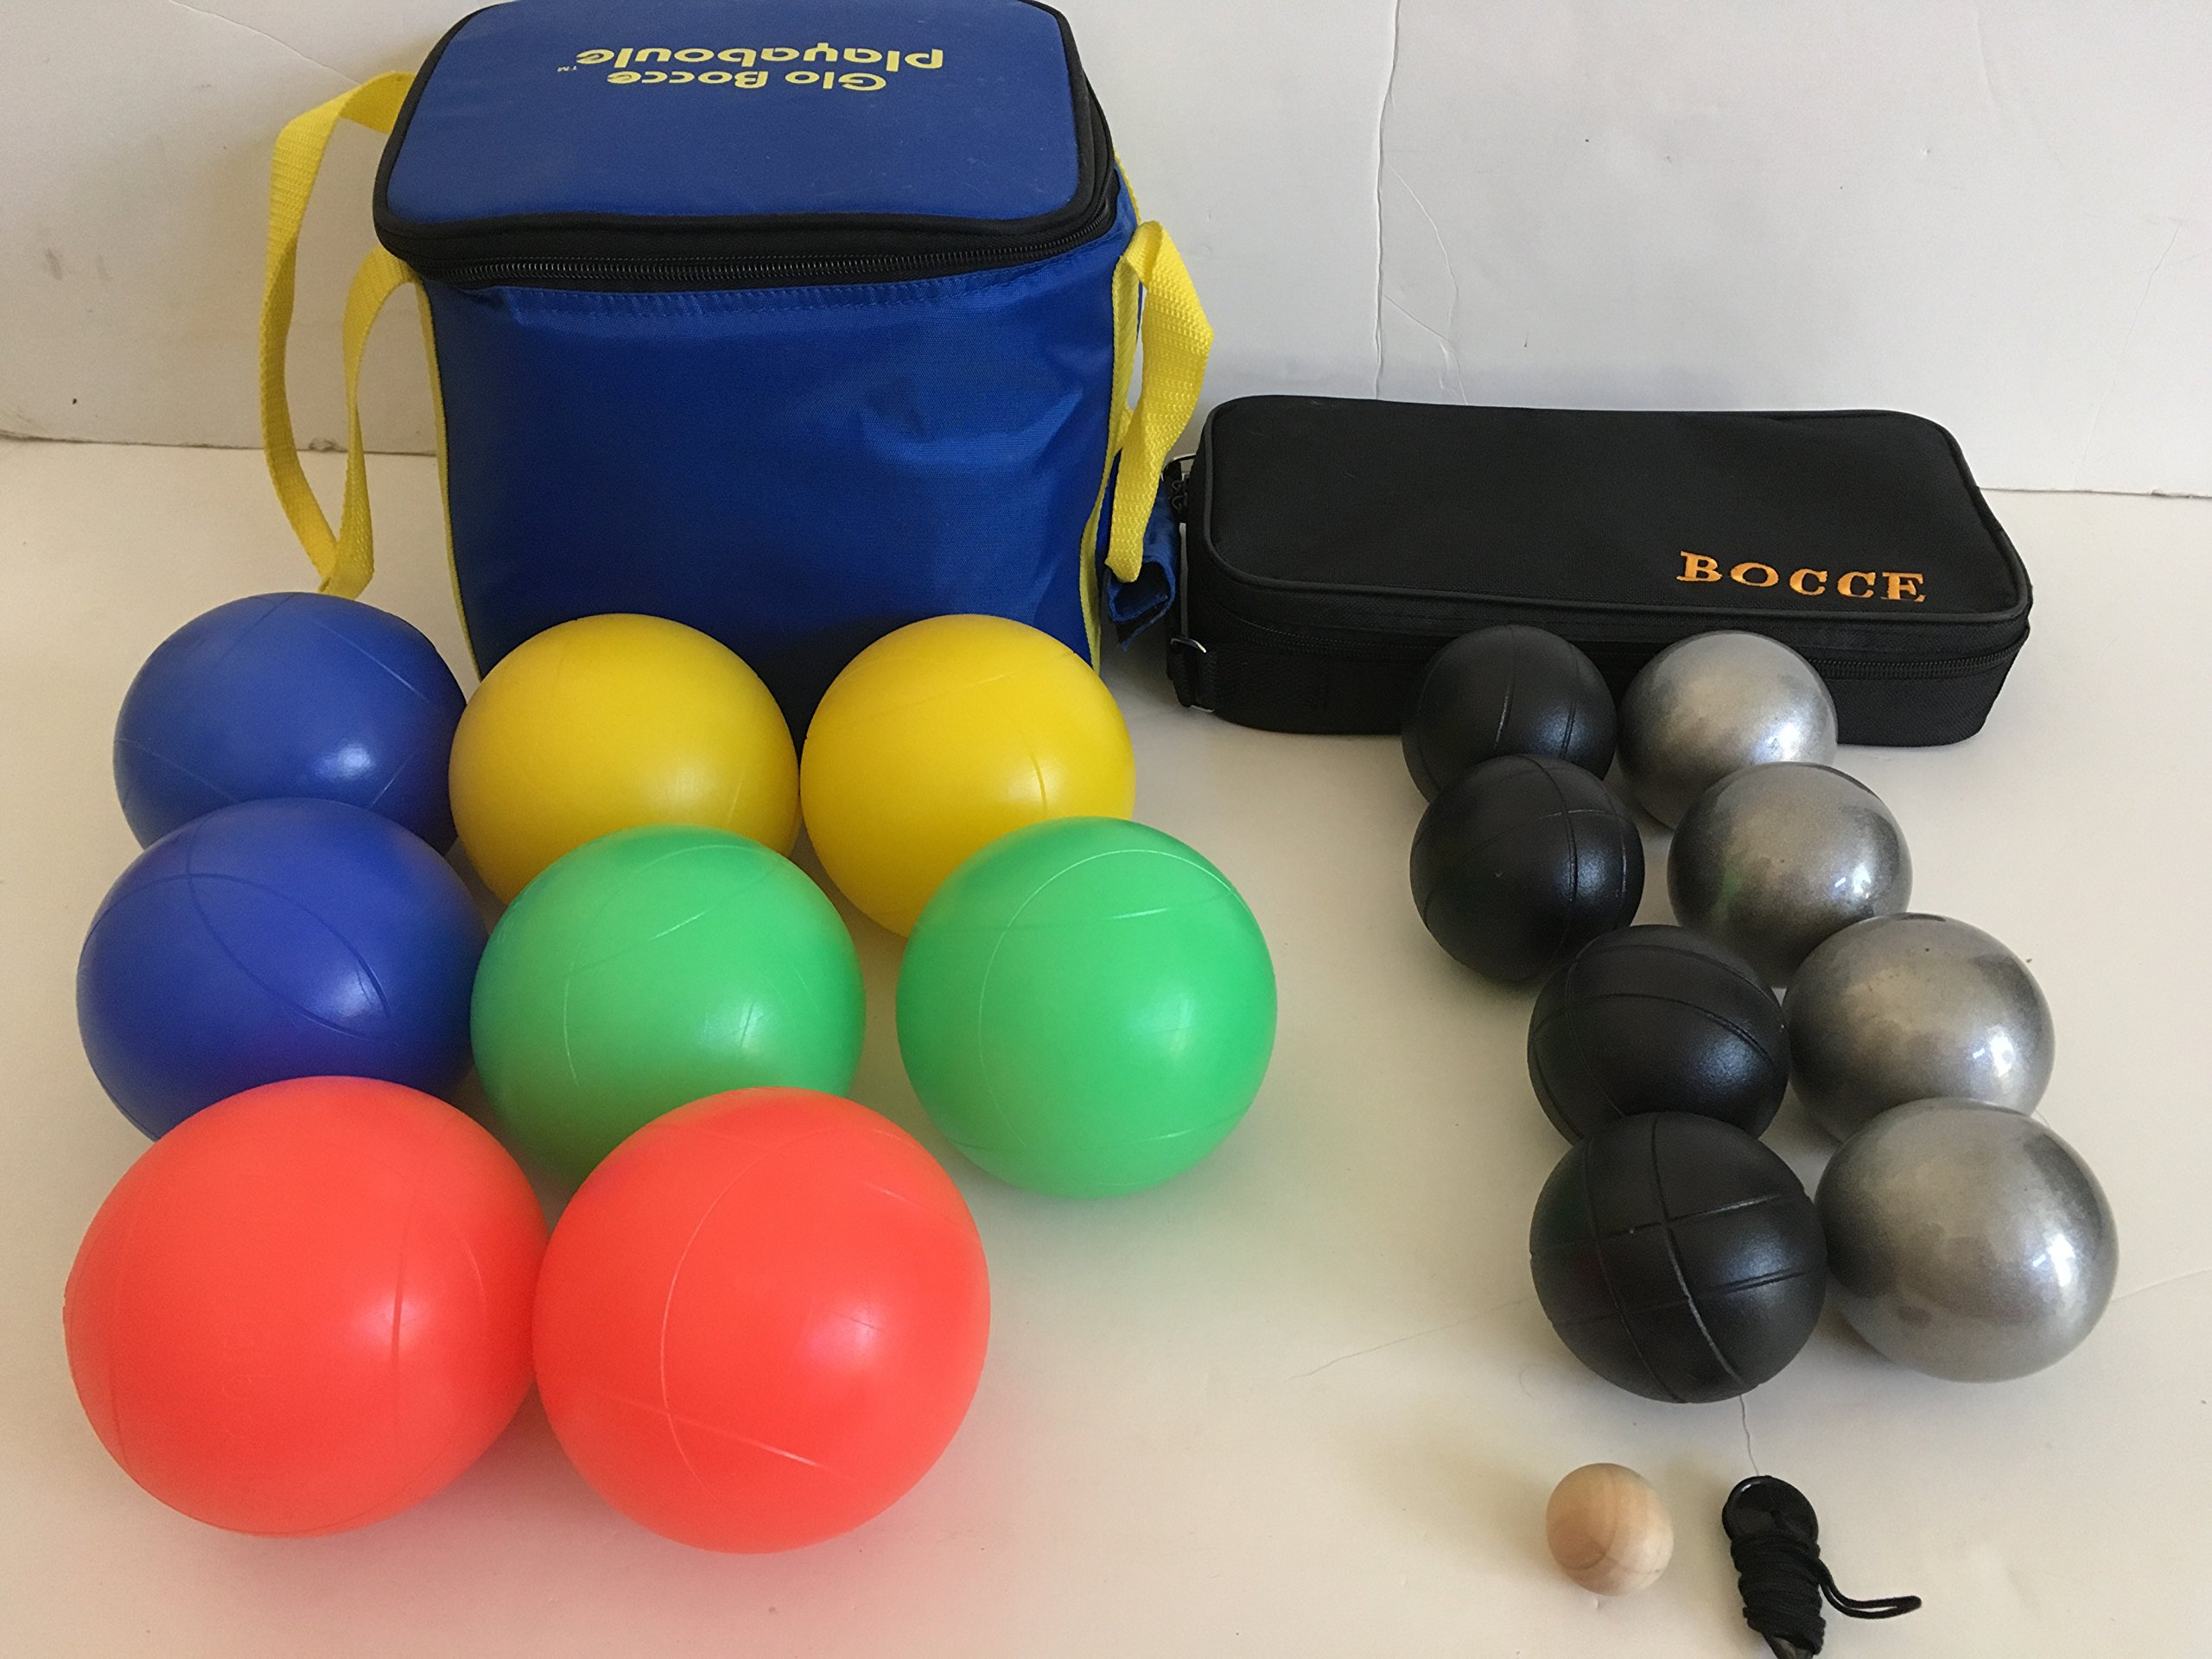 Glow in Dark BocceSset and 73mm Metal Bocce/Petanque 8 Ball Set with 4 black and 4 plain grind sand balls and black bag